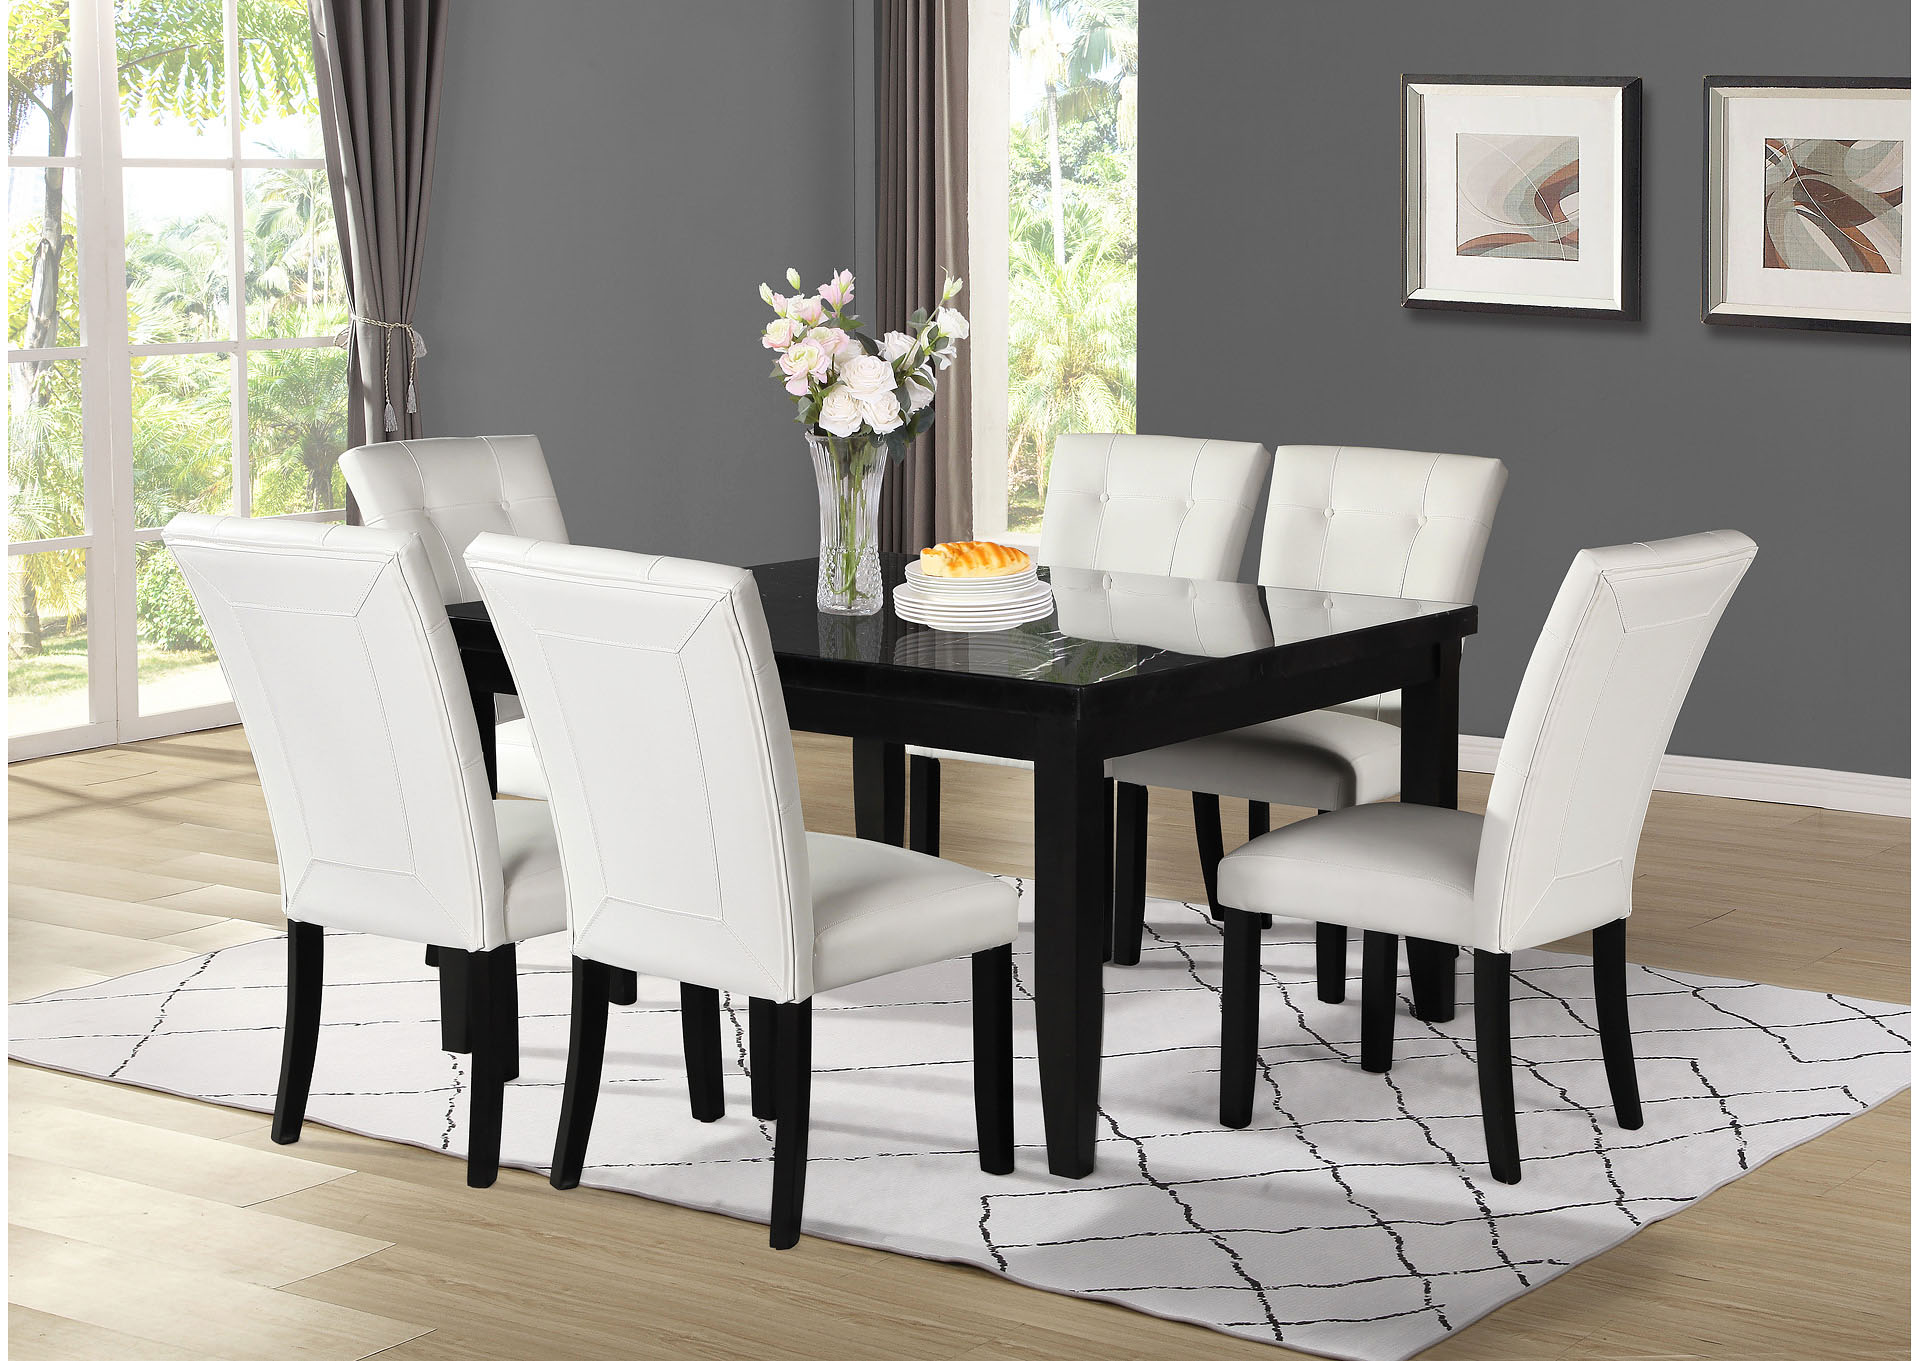 Markina Black Square Marble Top Dining Set W 6 Chairs White Ivan Smith